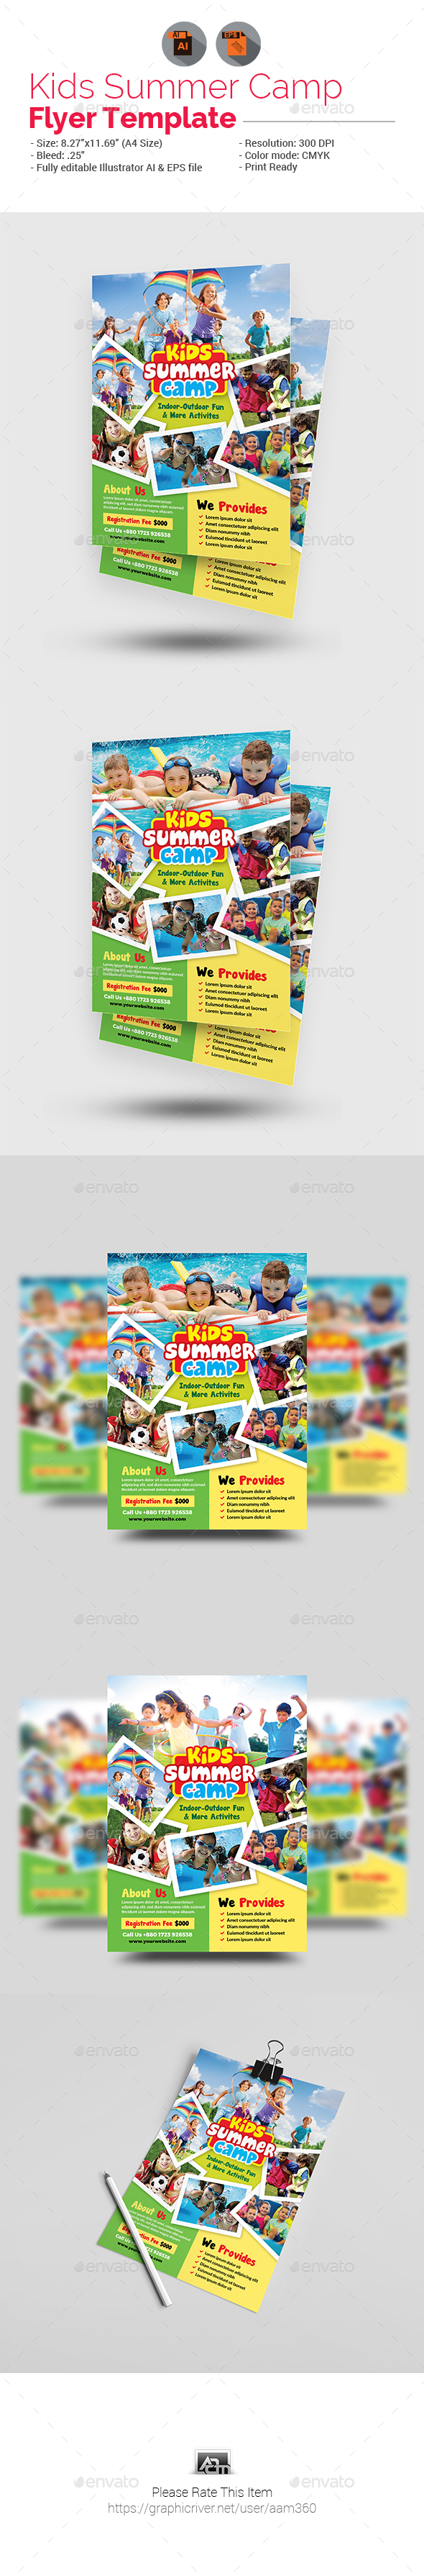 Kids Summer Camp Flyer - Flyers Print Templates